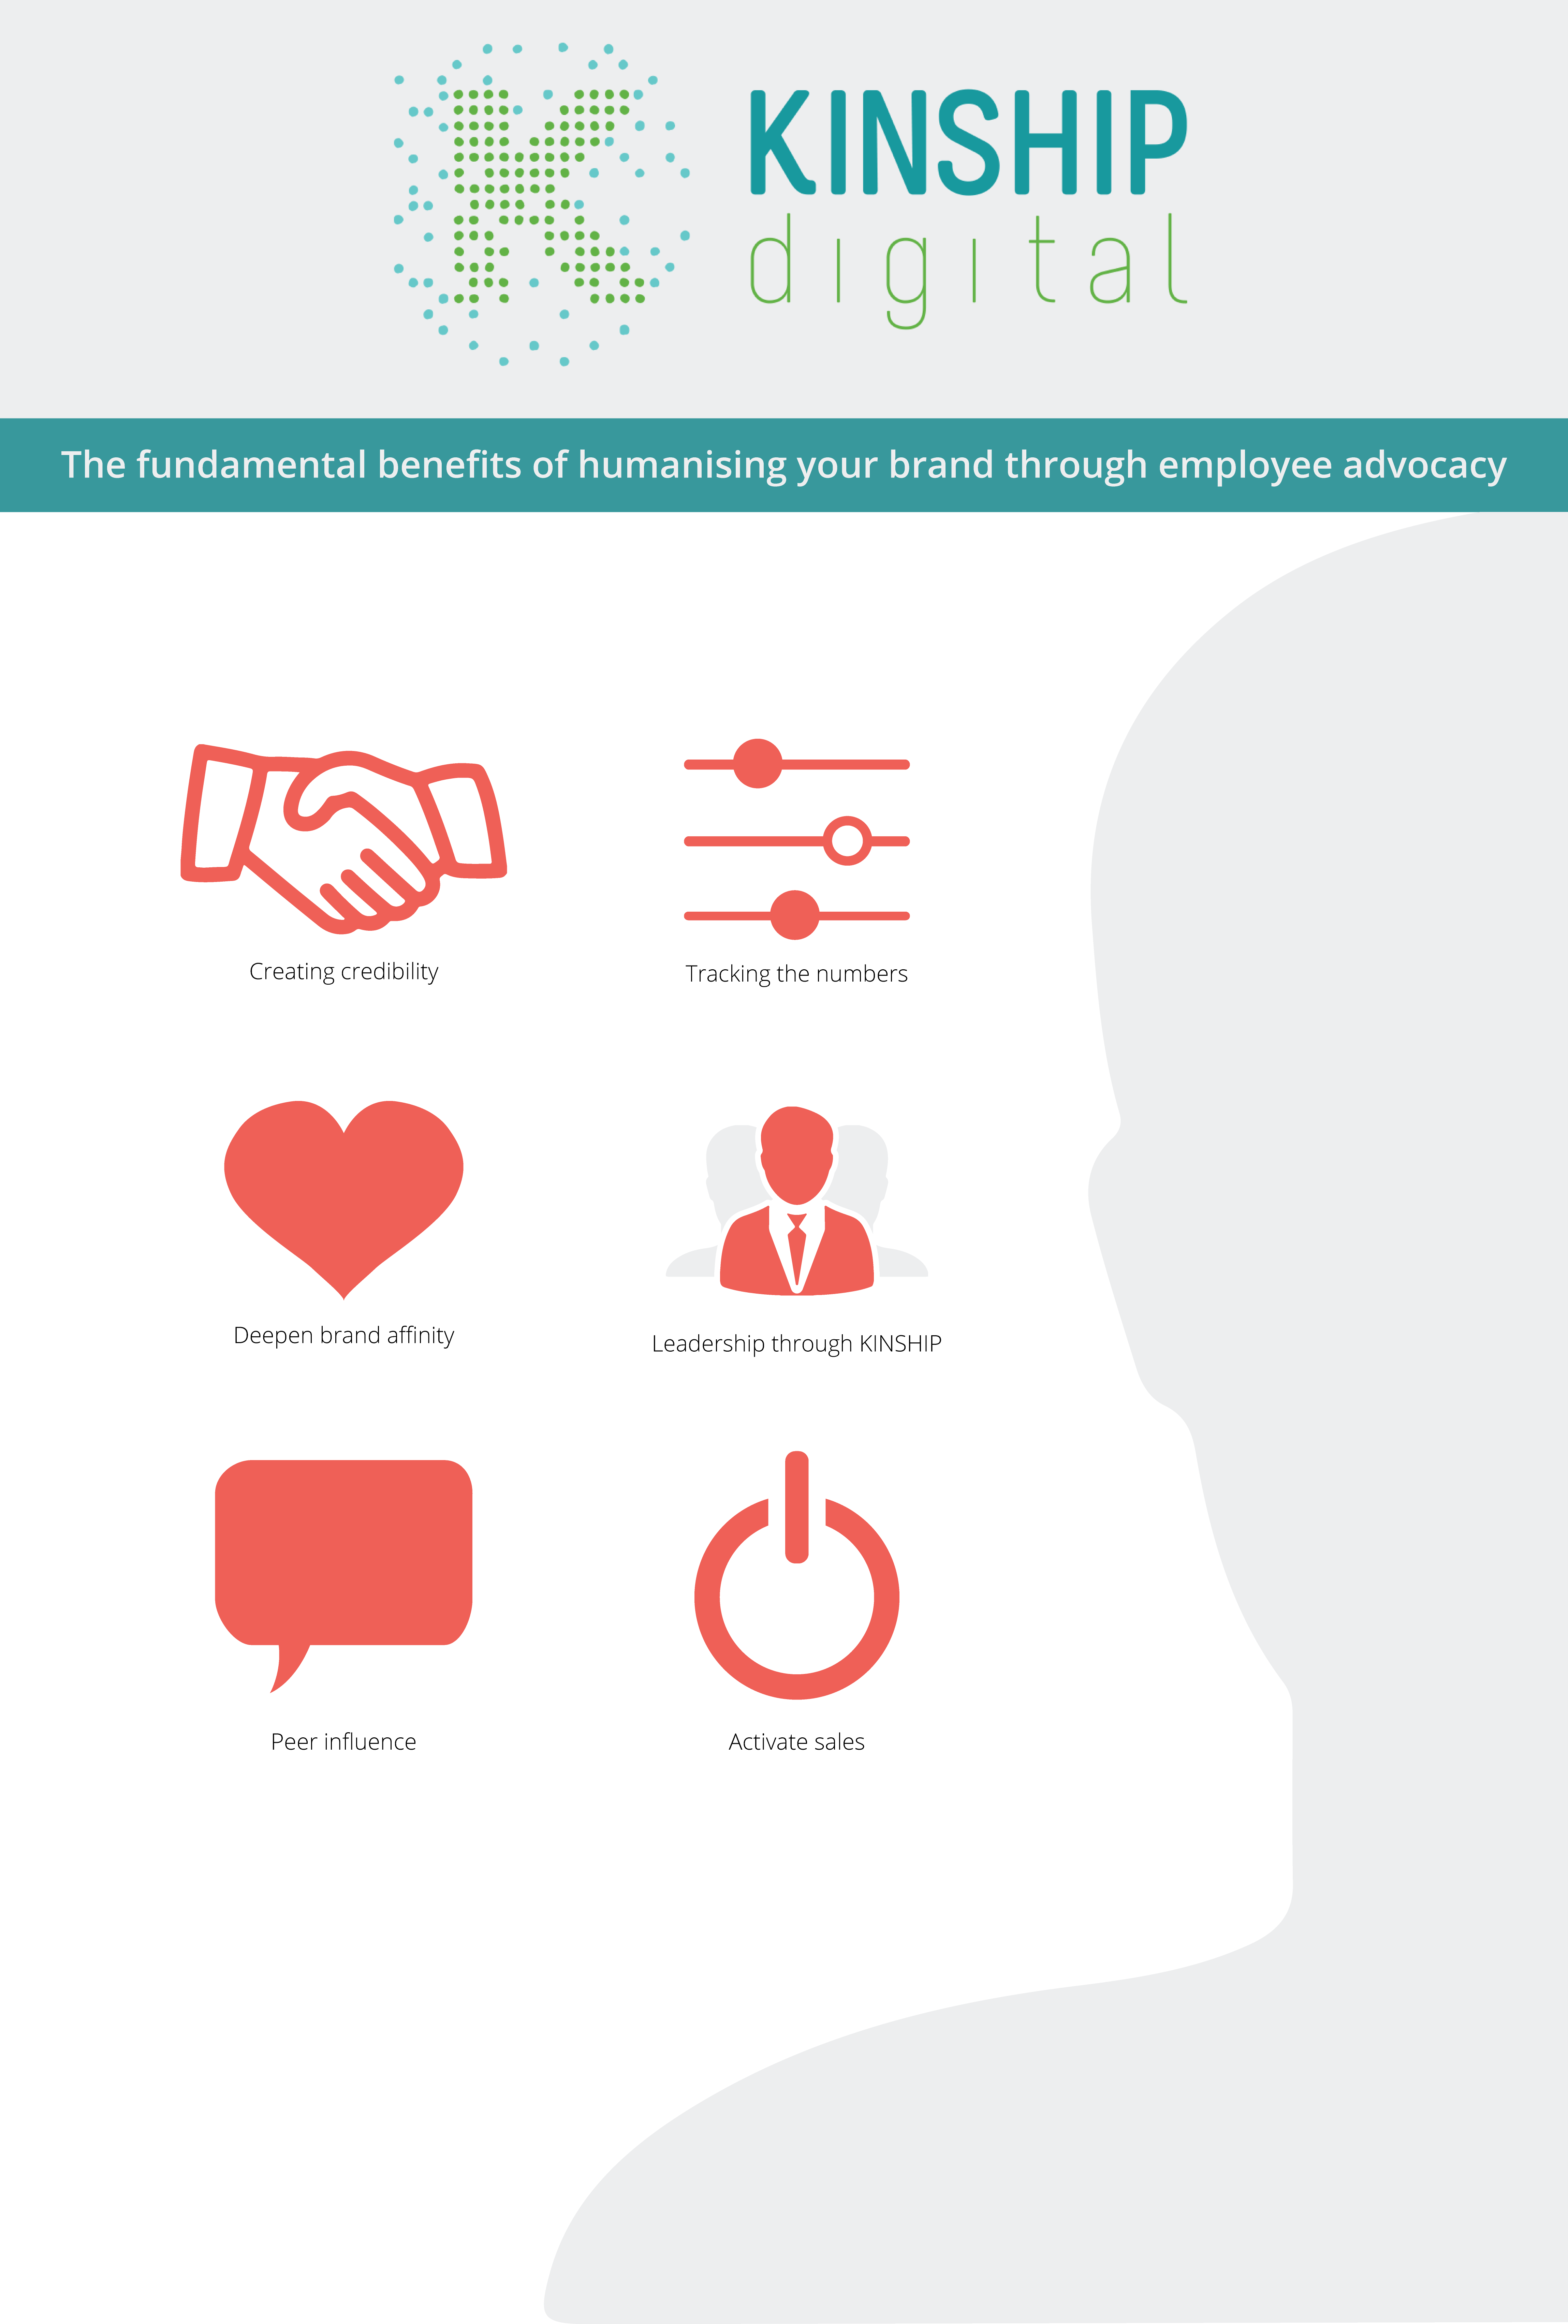 The fundamental benefits of humanising your brand through employee advocacy infographic